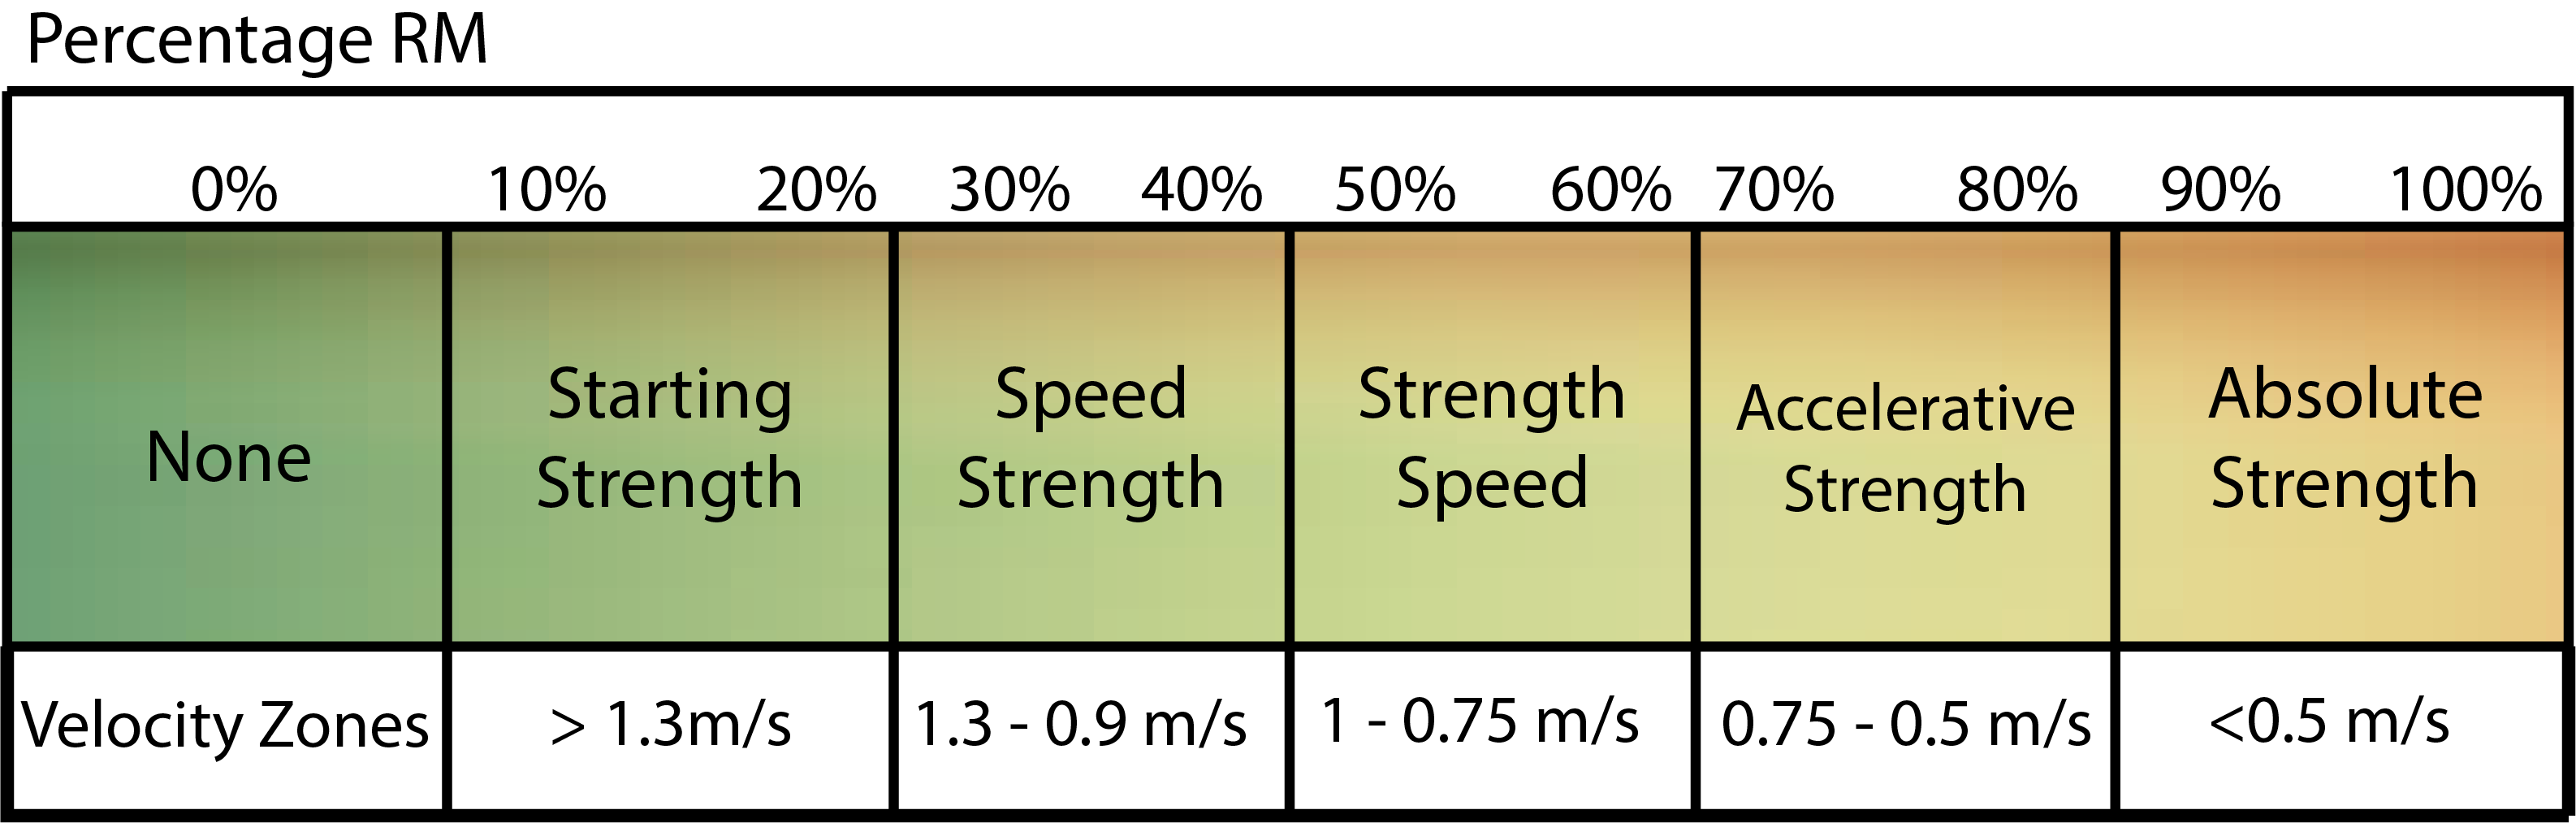 Velocity traits and zones on a continuum, adapted from Bryan Mann's book [13].